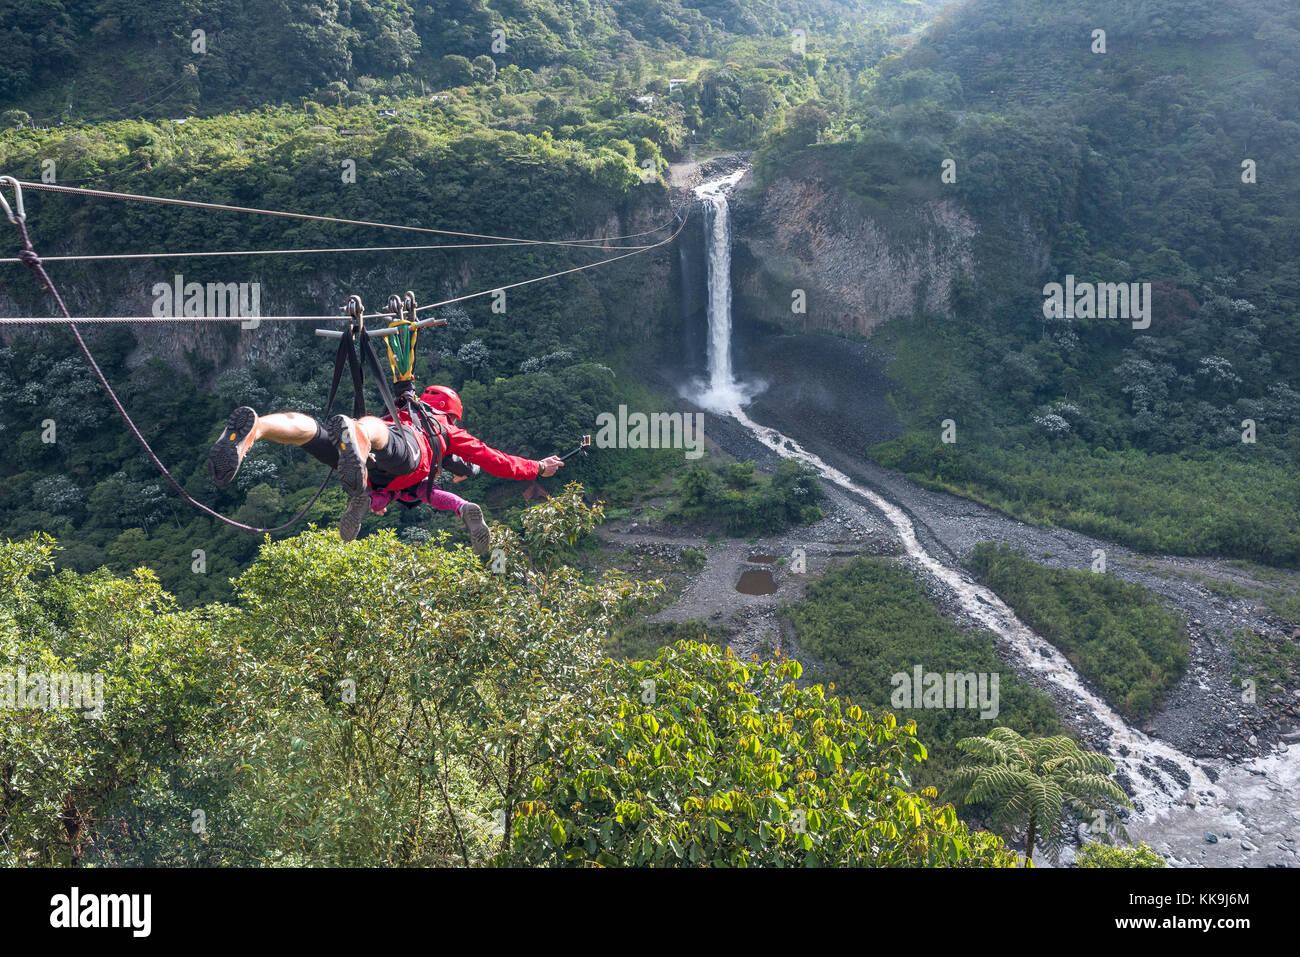 Cascades route, Banos, Ecuador - November 28, 2017: Tourists gliding on the zip line trip against Bridal veil (Manto - Stock Image